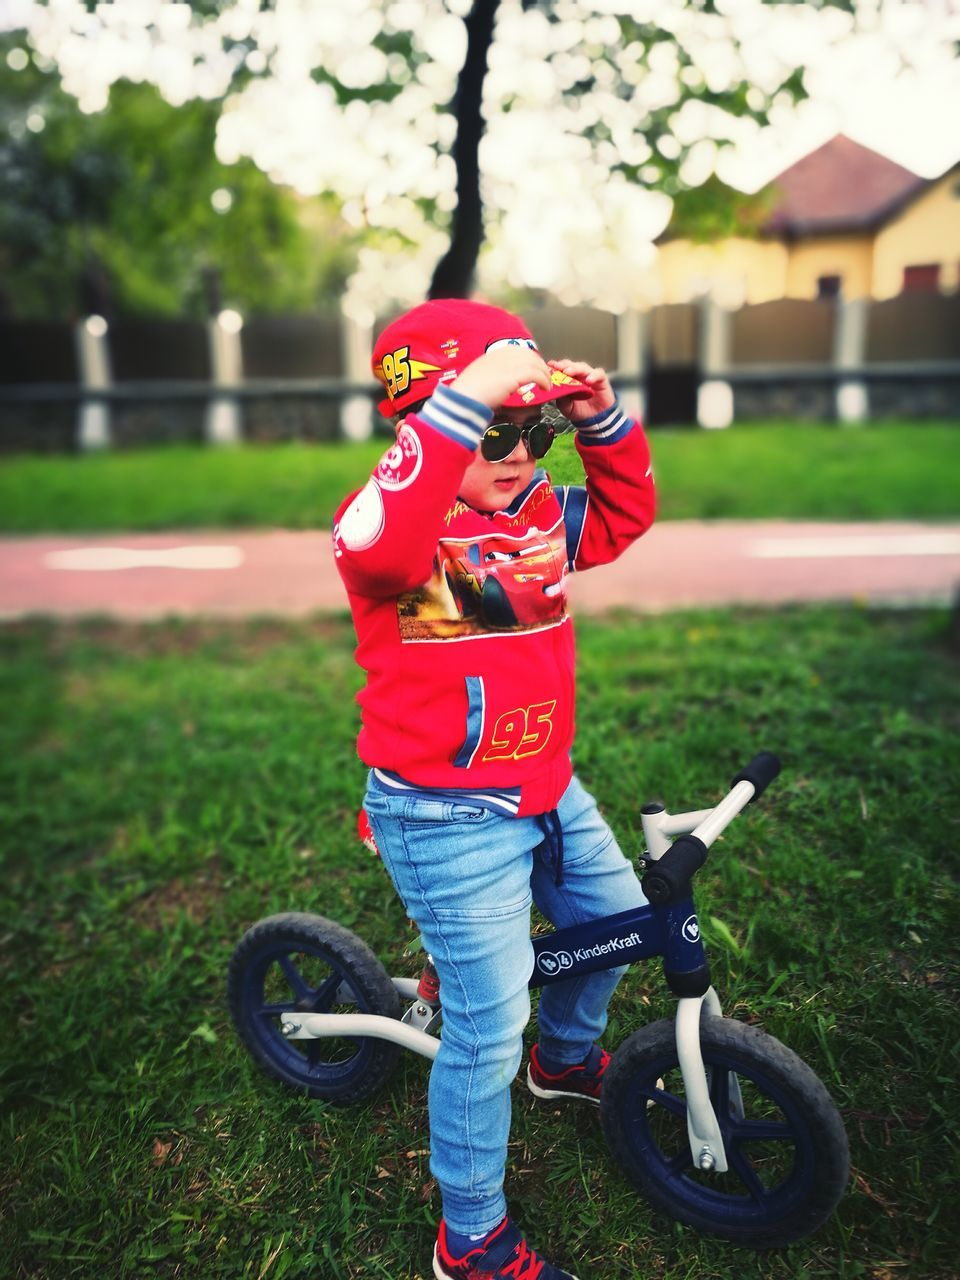 grass, headwear, helmet, full length, field, sports helmet, real people, day, one person, bicycle, leisure activity, transportation, outdoors, childhood, sports clothing, cycling helmet, lifestyles, nature, people